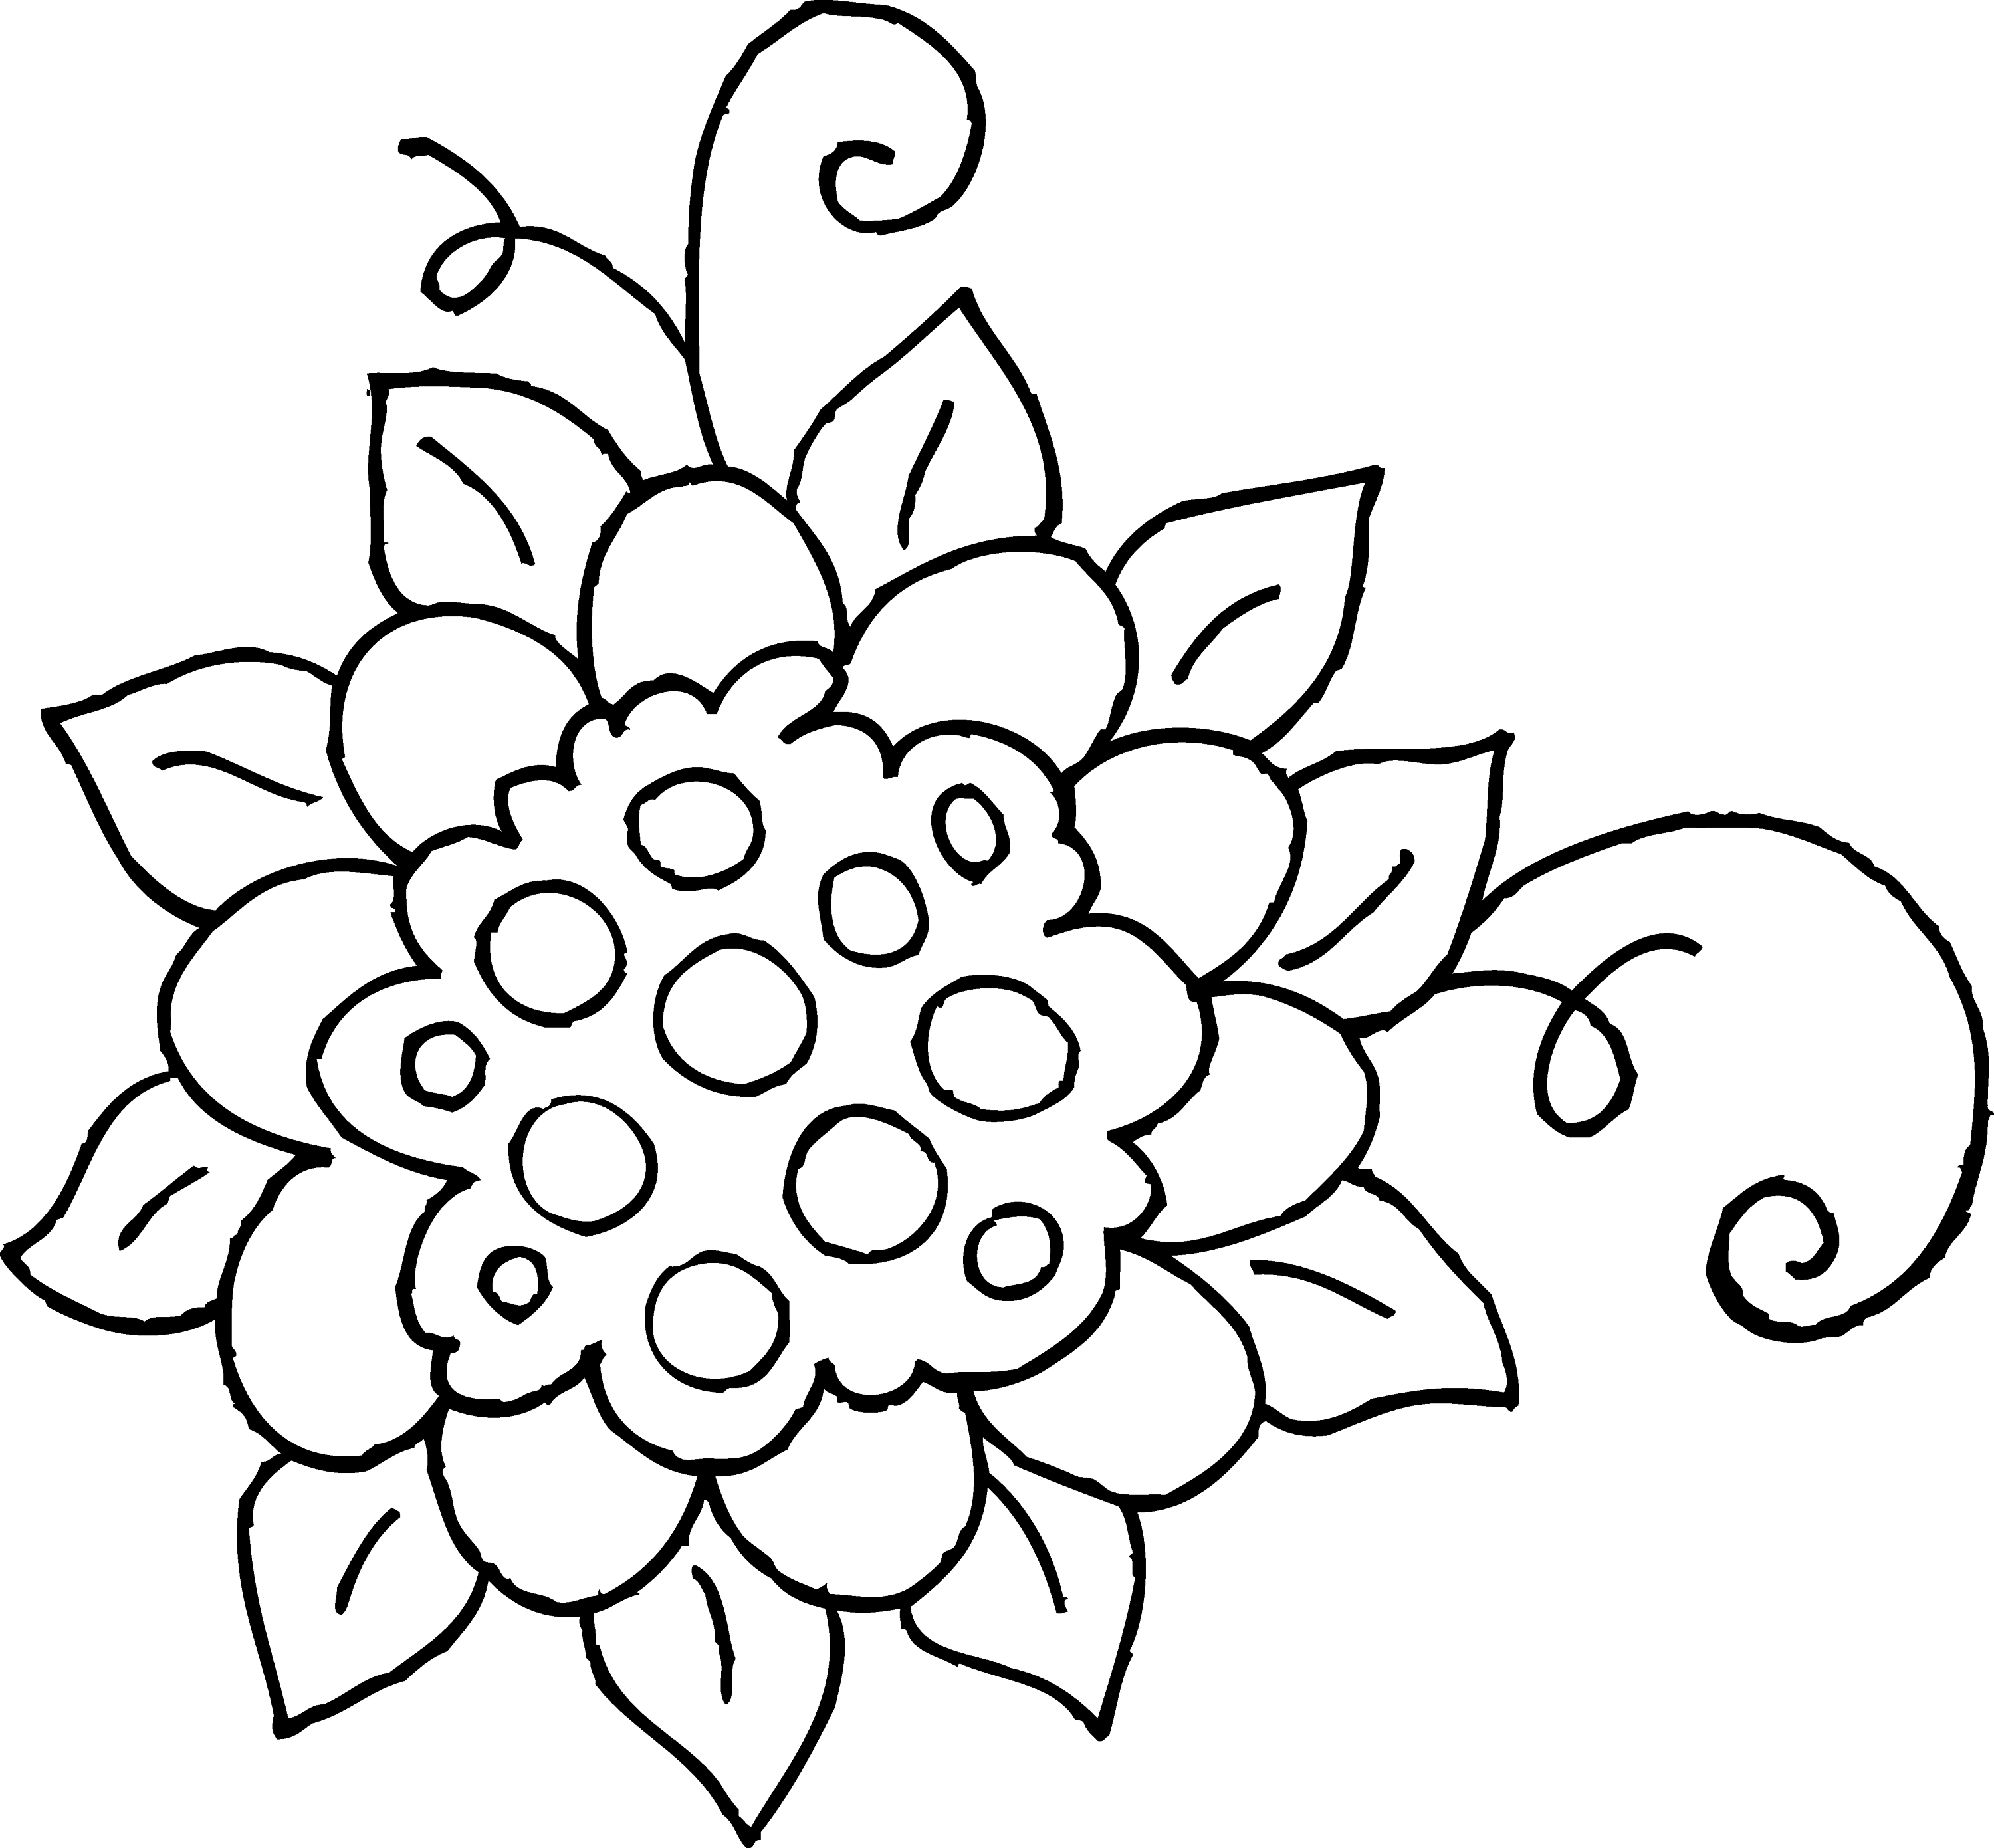 coloring flower png white rose coloring download white rose coloring for free coloring flower png